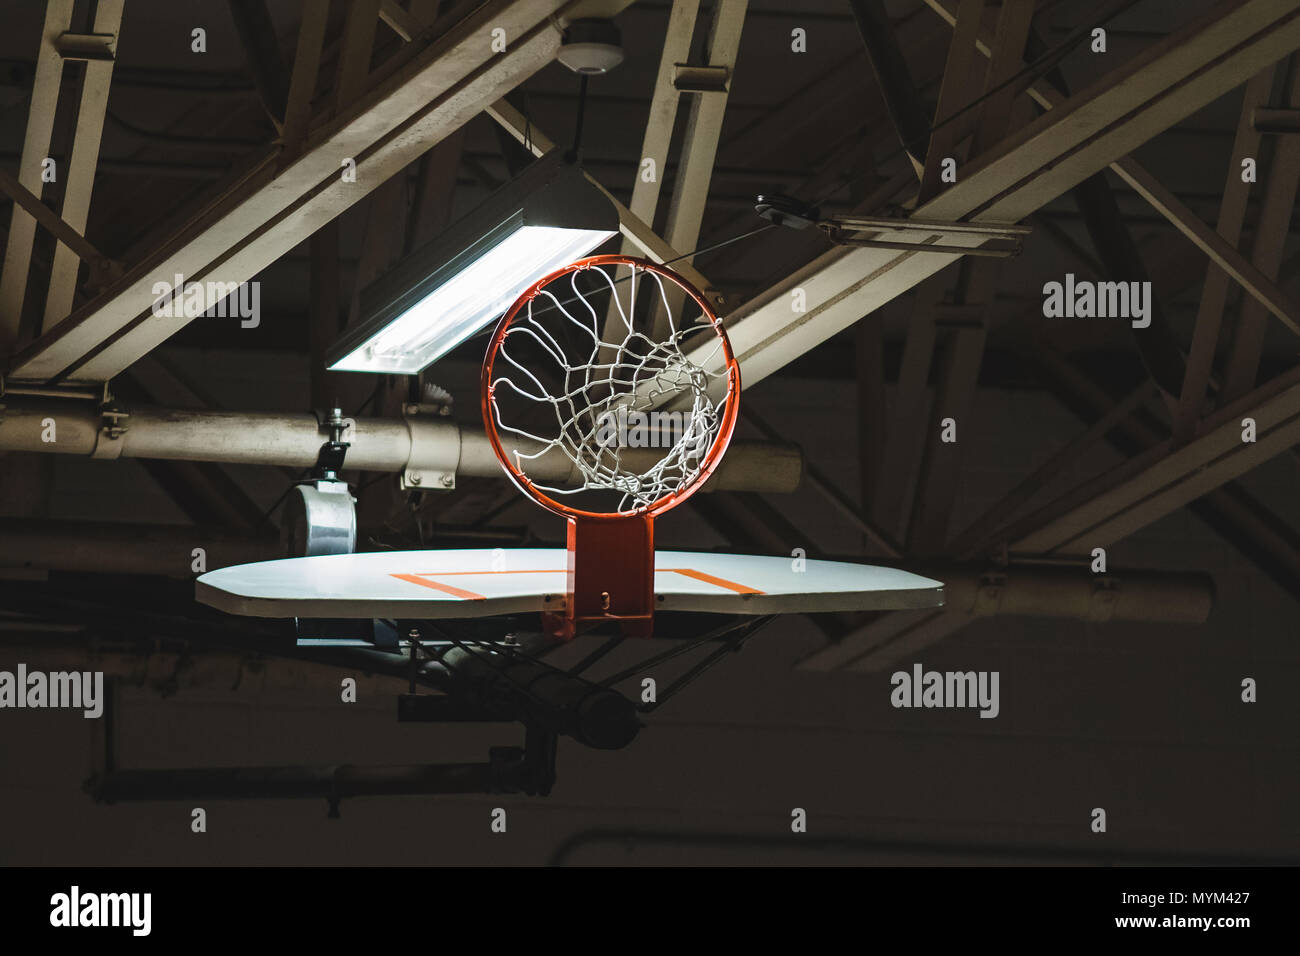 a basketball backboard hoop and net retracted up for storage - Stock Image